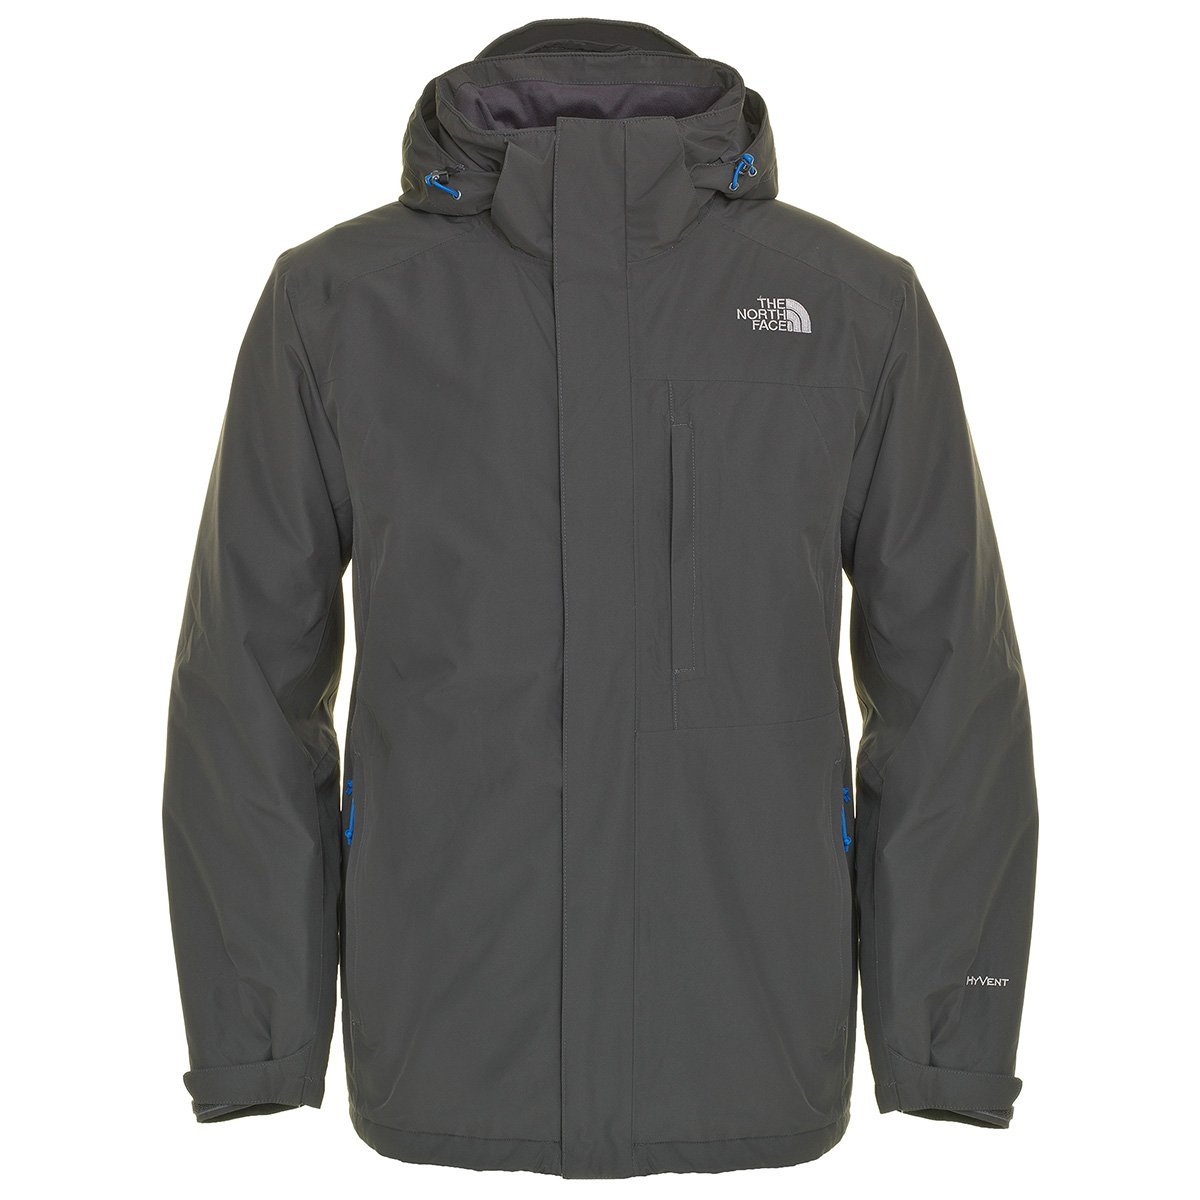 Herren Snowboard Jacke The North Face Ptk Jacket jetzt bestellen